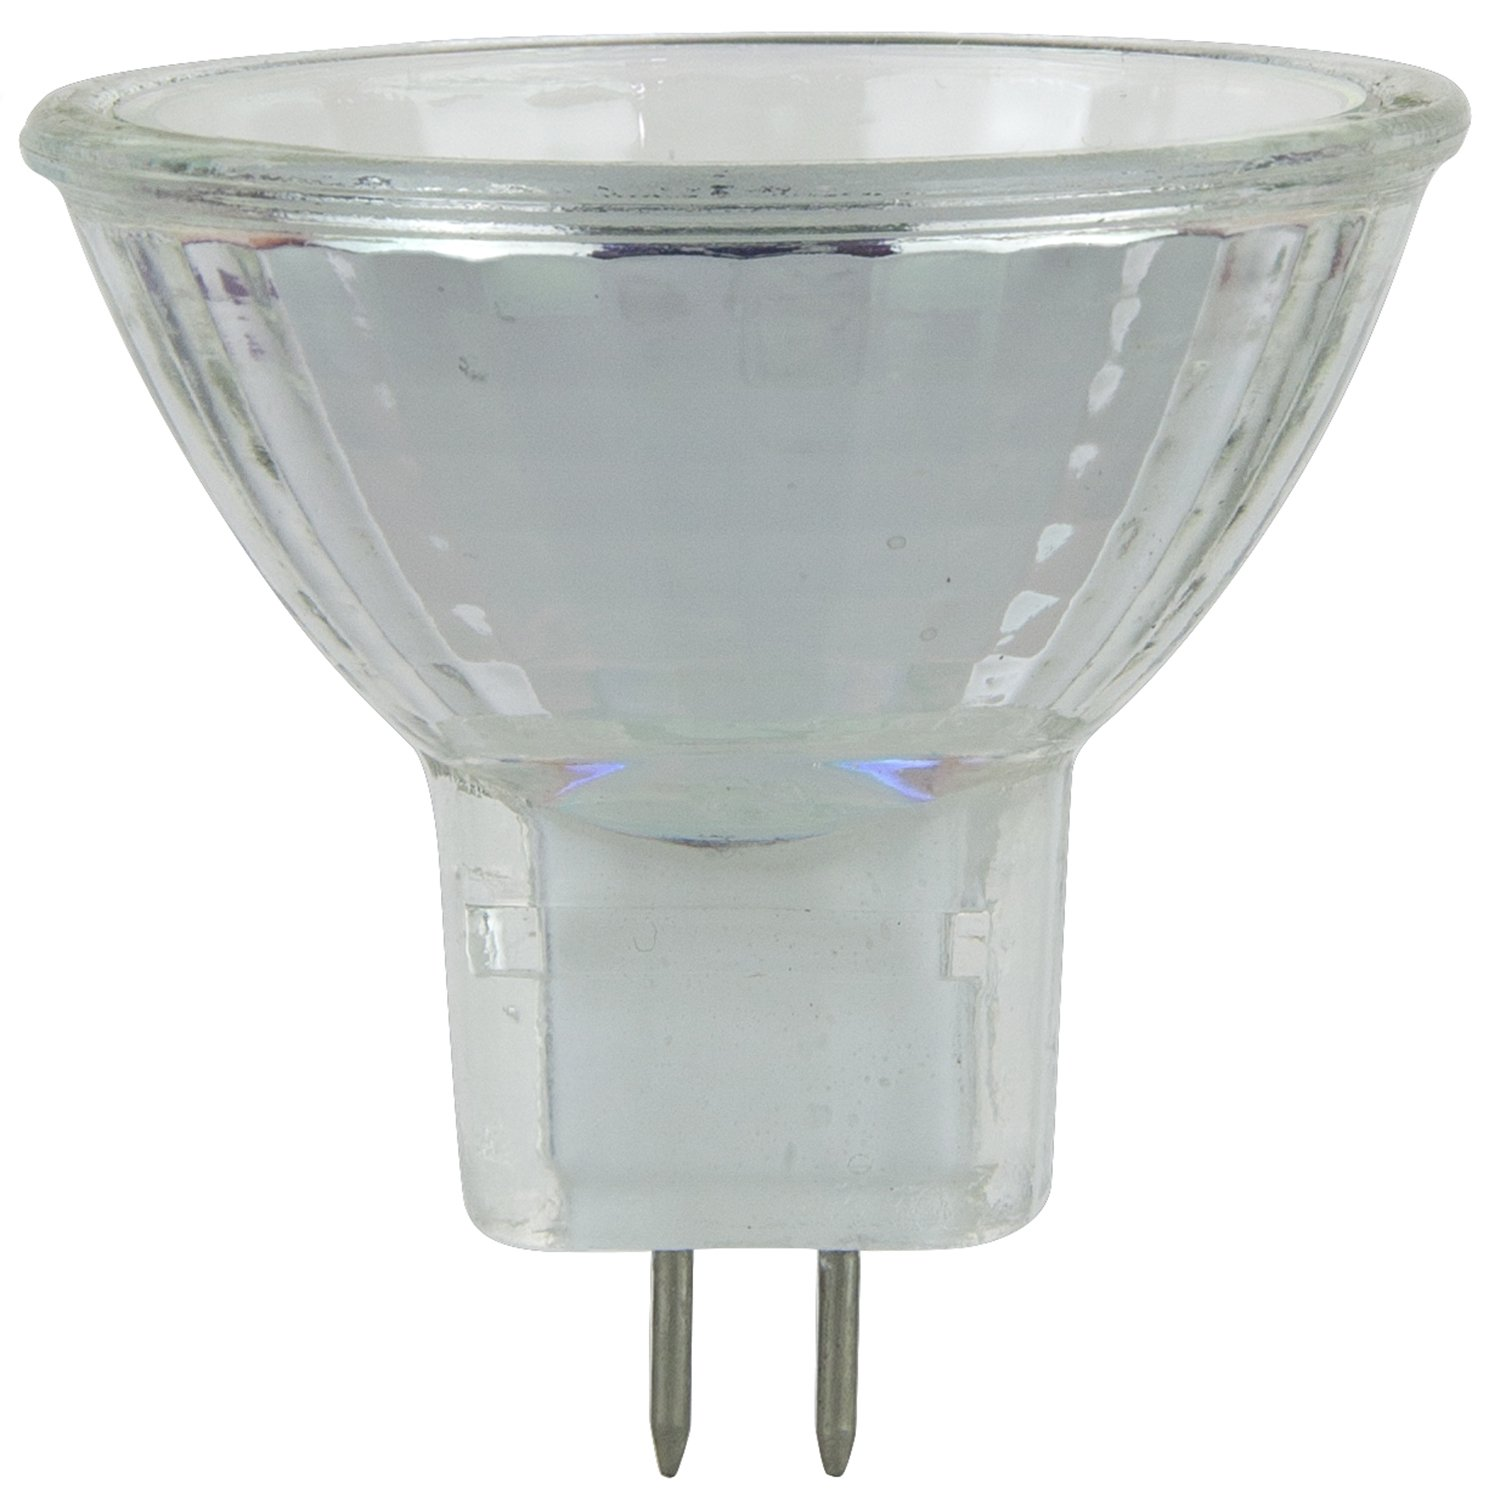 Sunlite 5MR11 CG 12V 5 Watt Halogen MR11 GU4 Based Mini Reflector Bulb Cover Guard